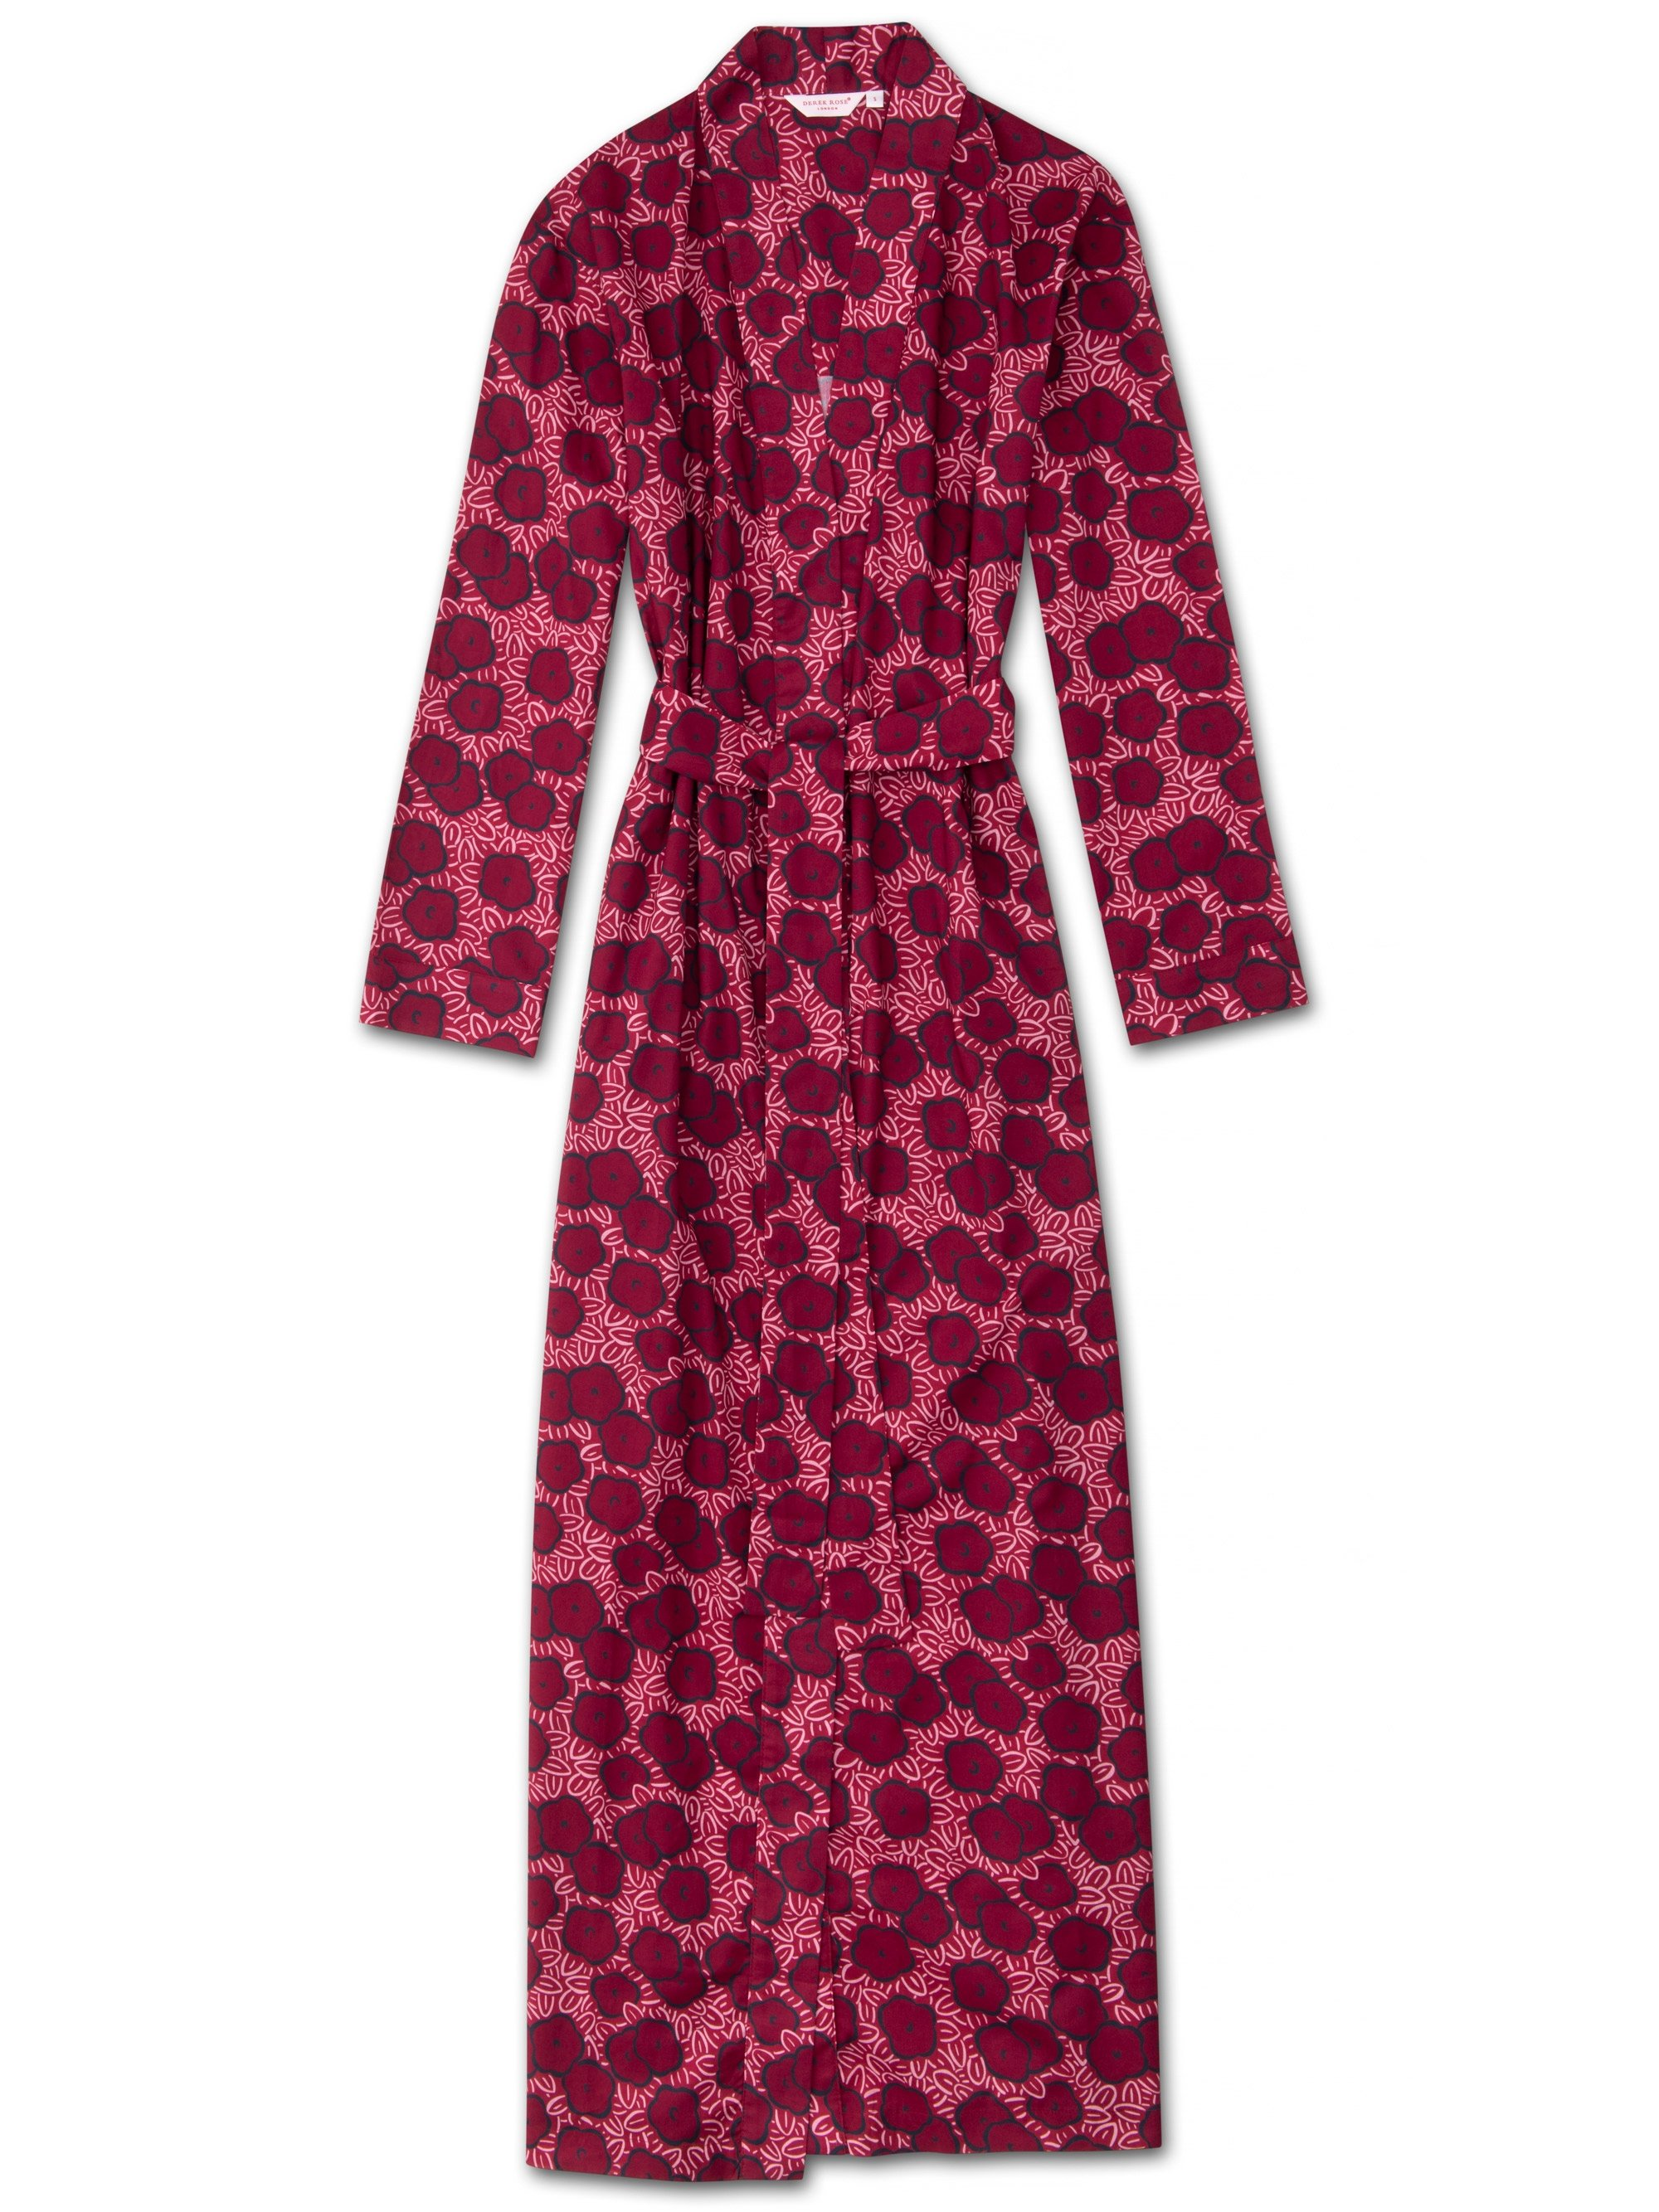 Women's Full Length Dressing Gown Ledbury 33 Cotton Batiste Pink